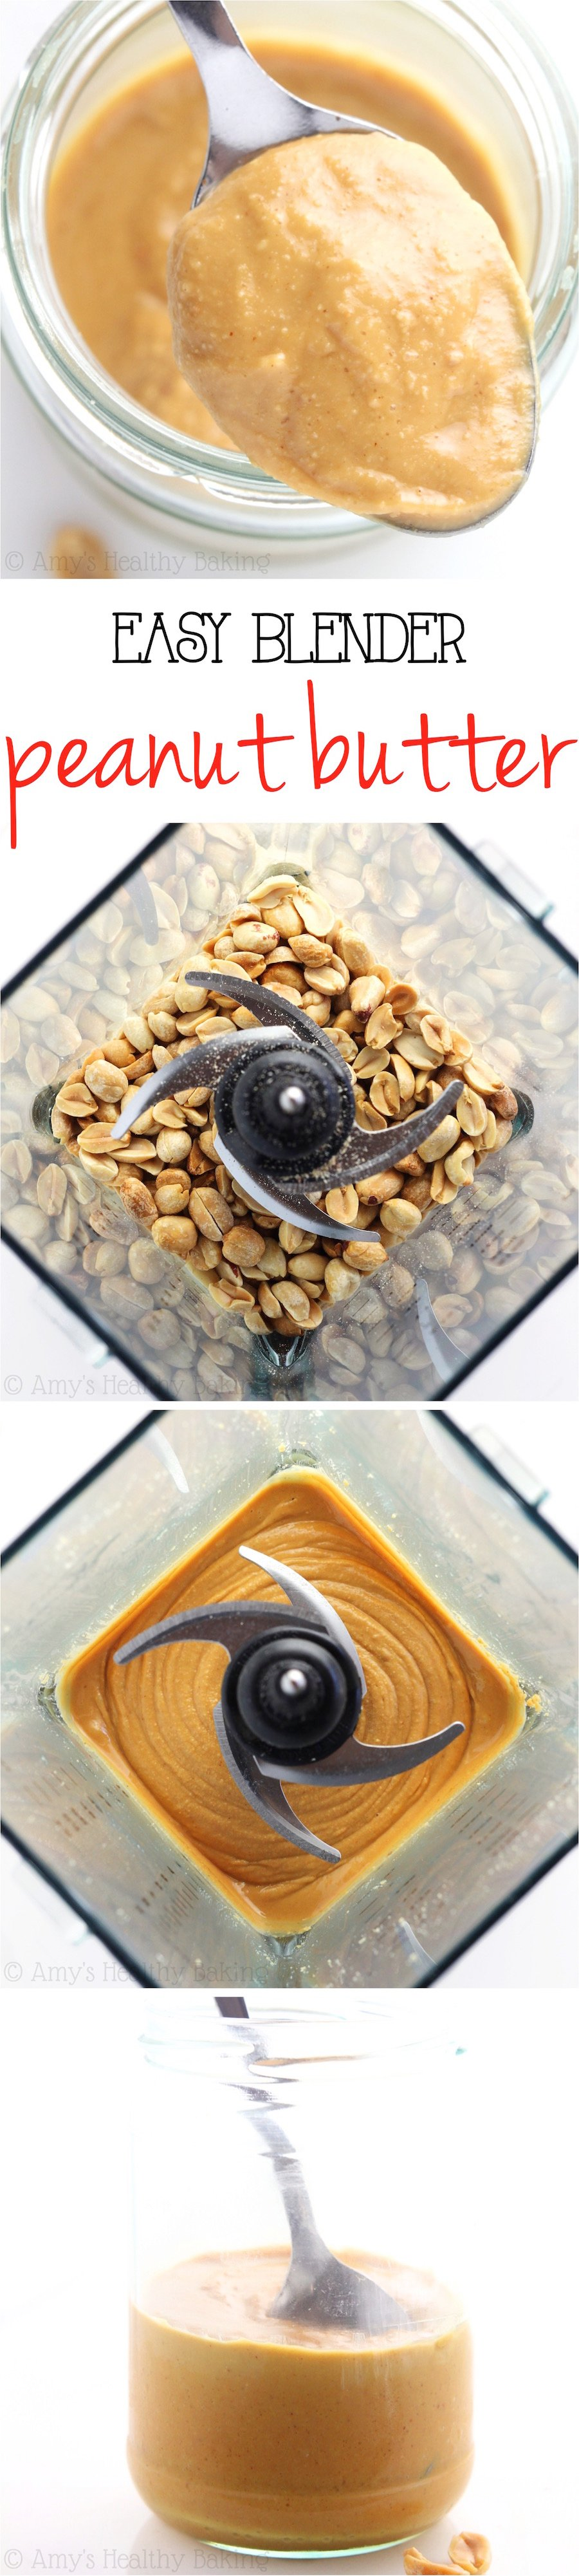 Easy Blender Peanut Butter -- you just need 2 ingredients & 5 minutes! This tastes SO much better than store-bought. I'm never going back!